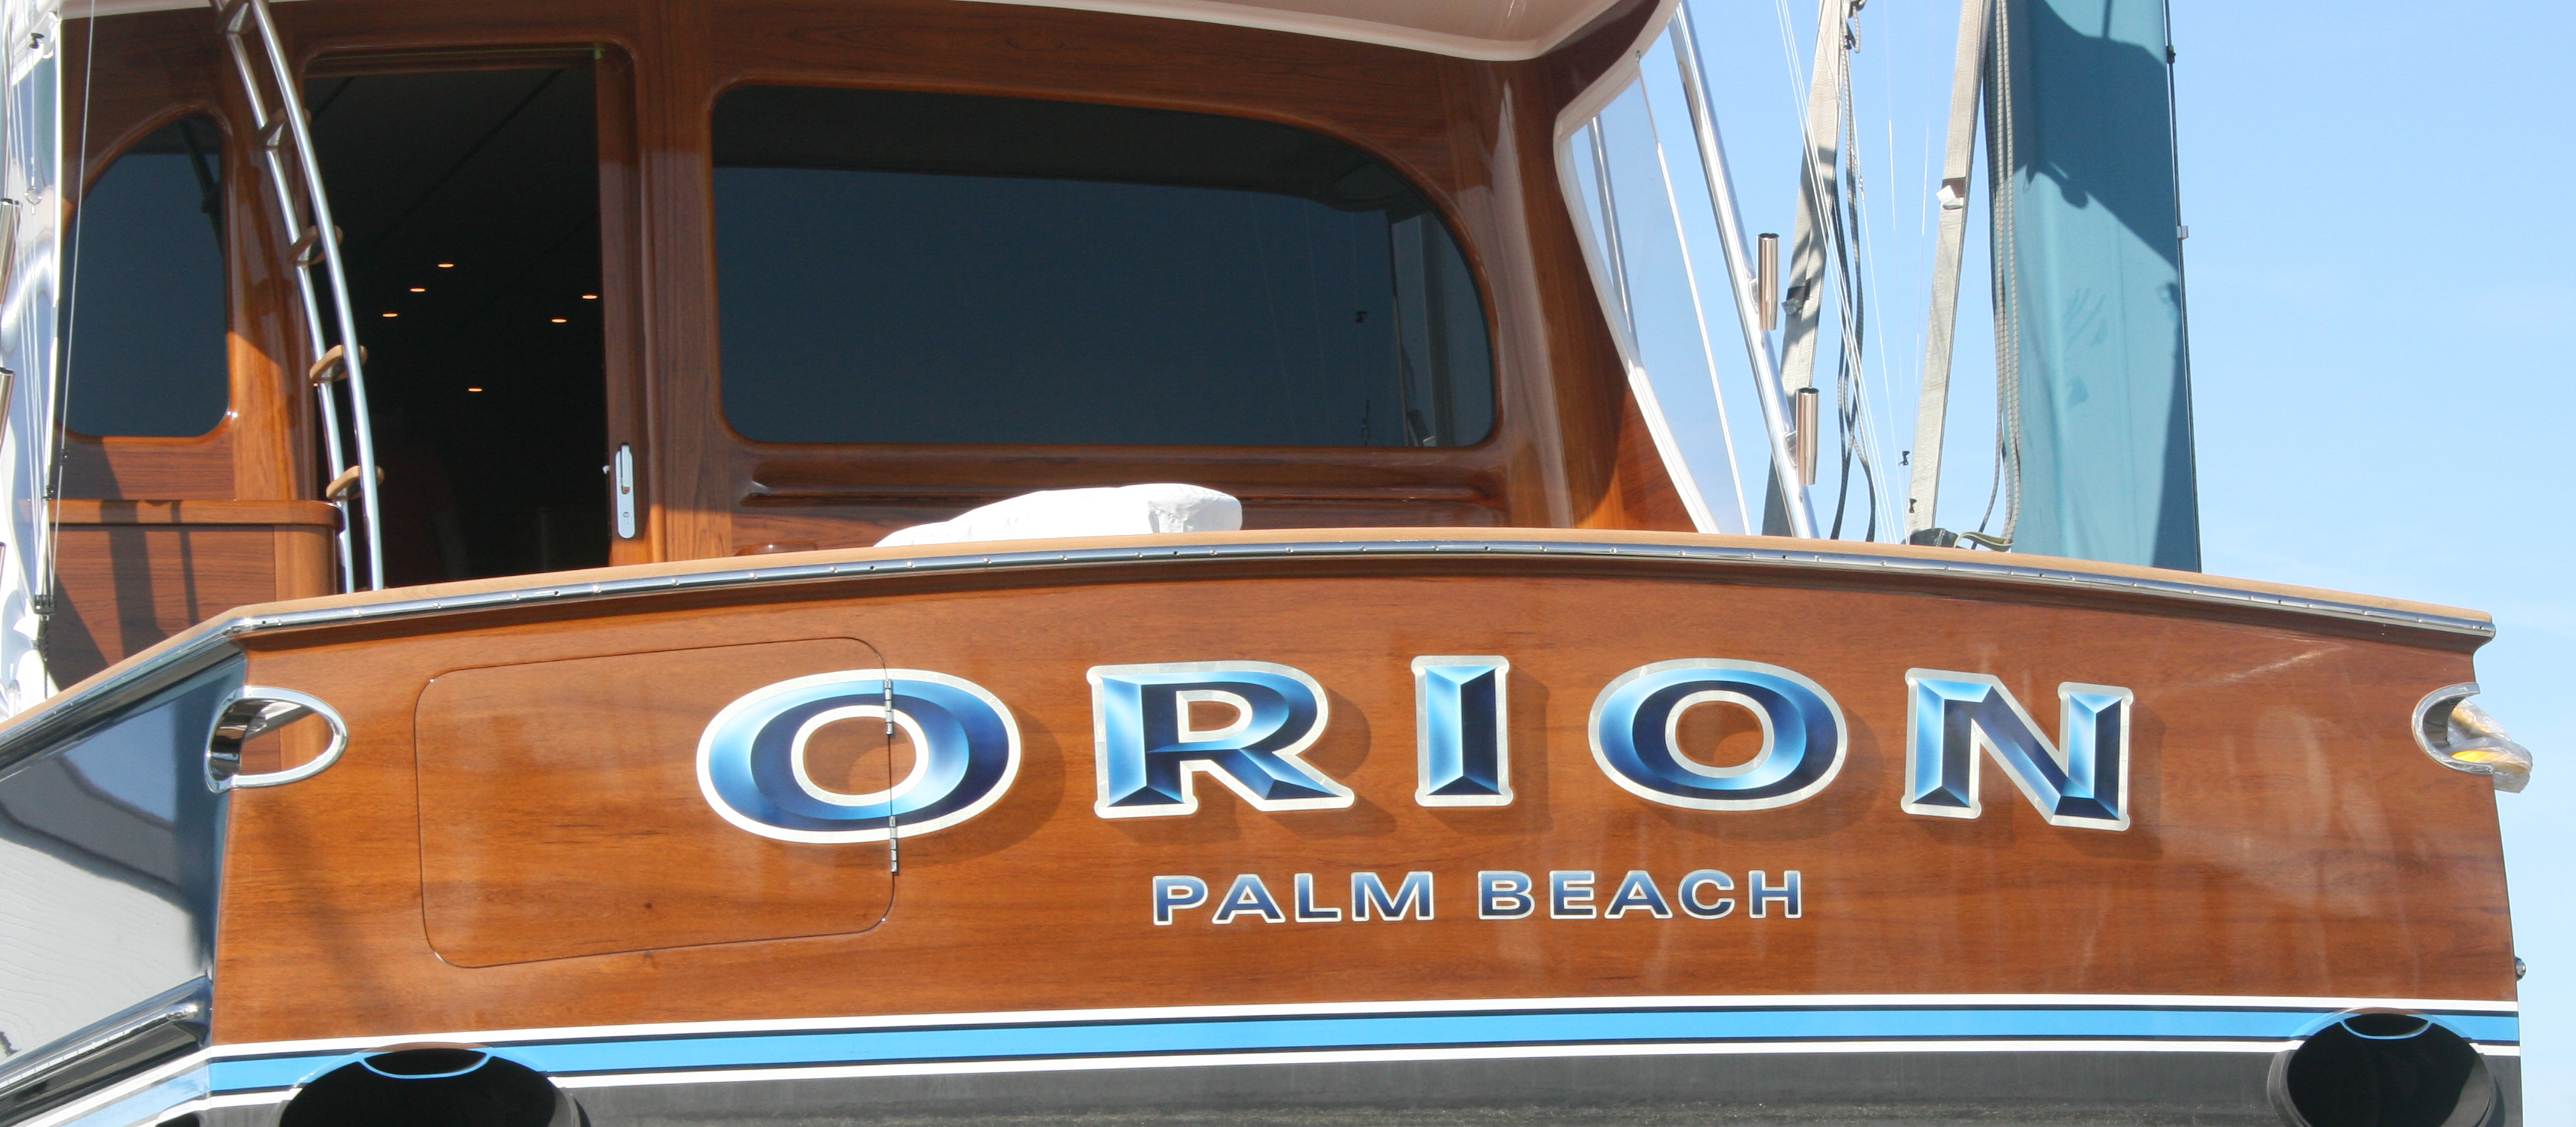 Orion-Palm-Beach-Florida-Boat-Transom-name-design-bevel-letters